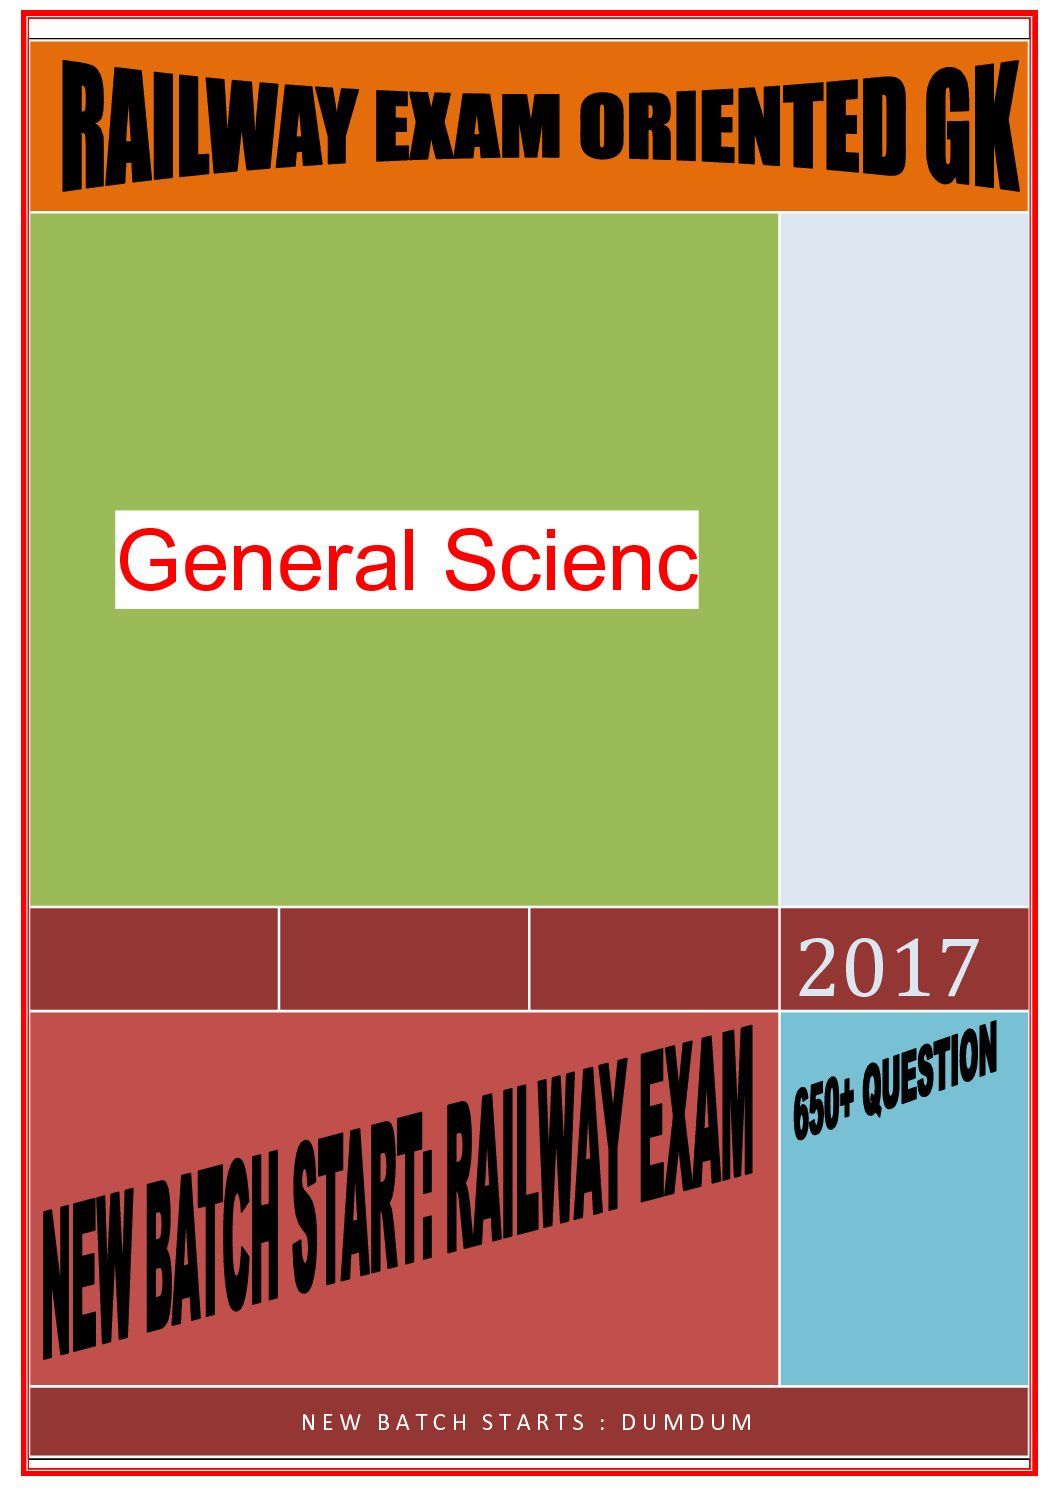 650+ QUESTION RAILWAY EXAM ( SCIENCE PART) (1) Download